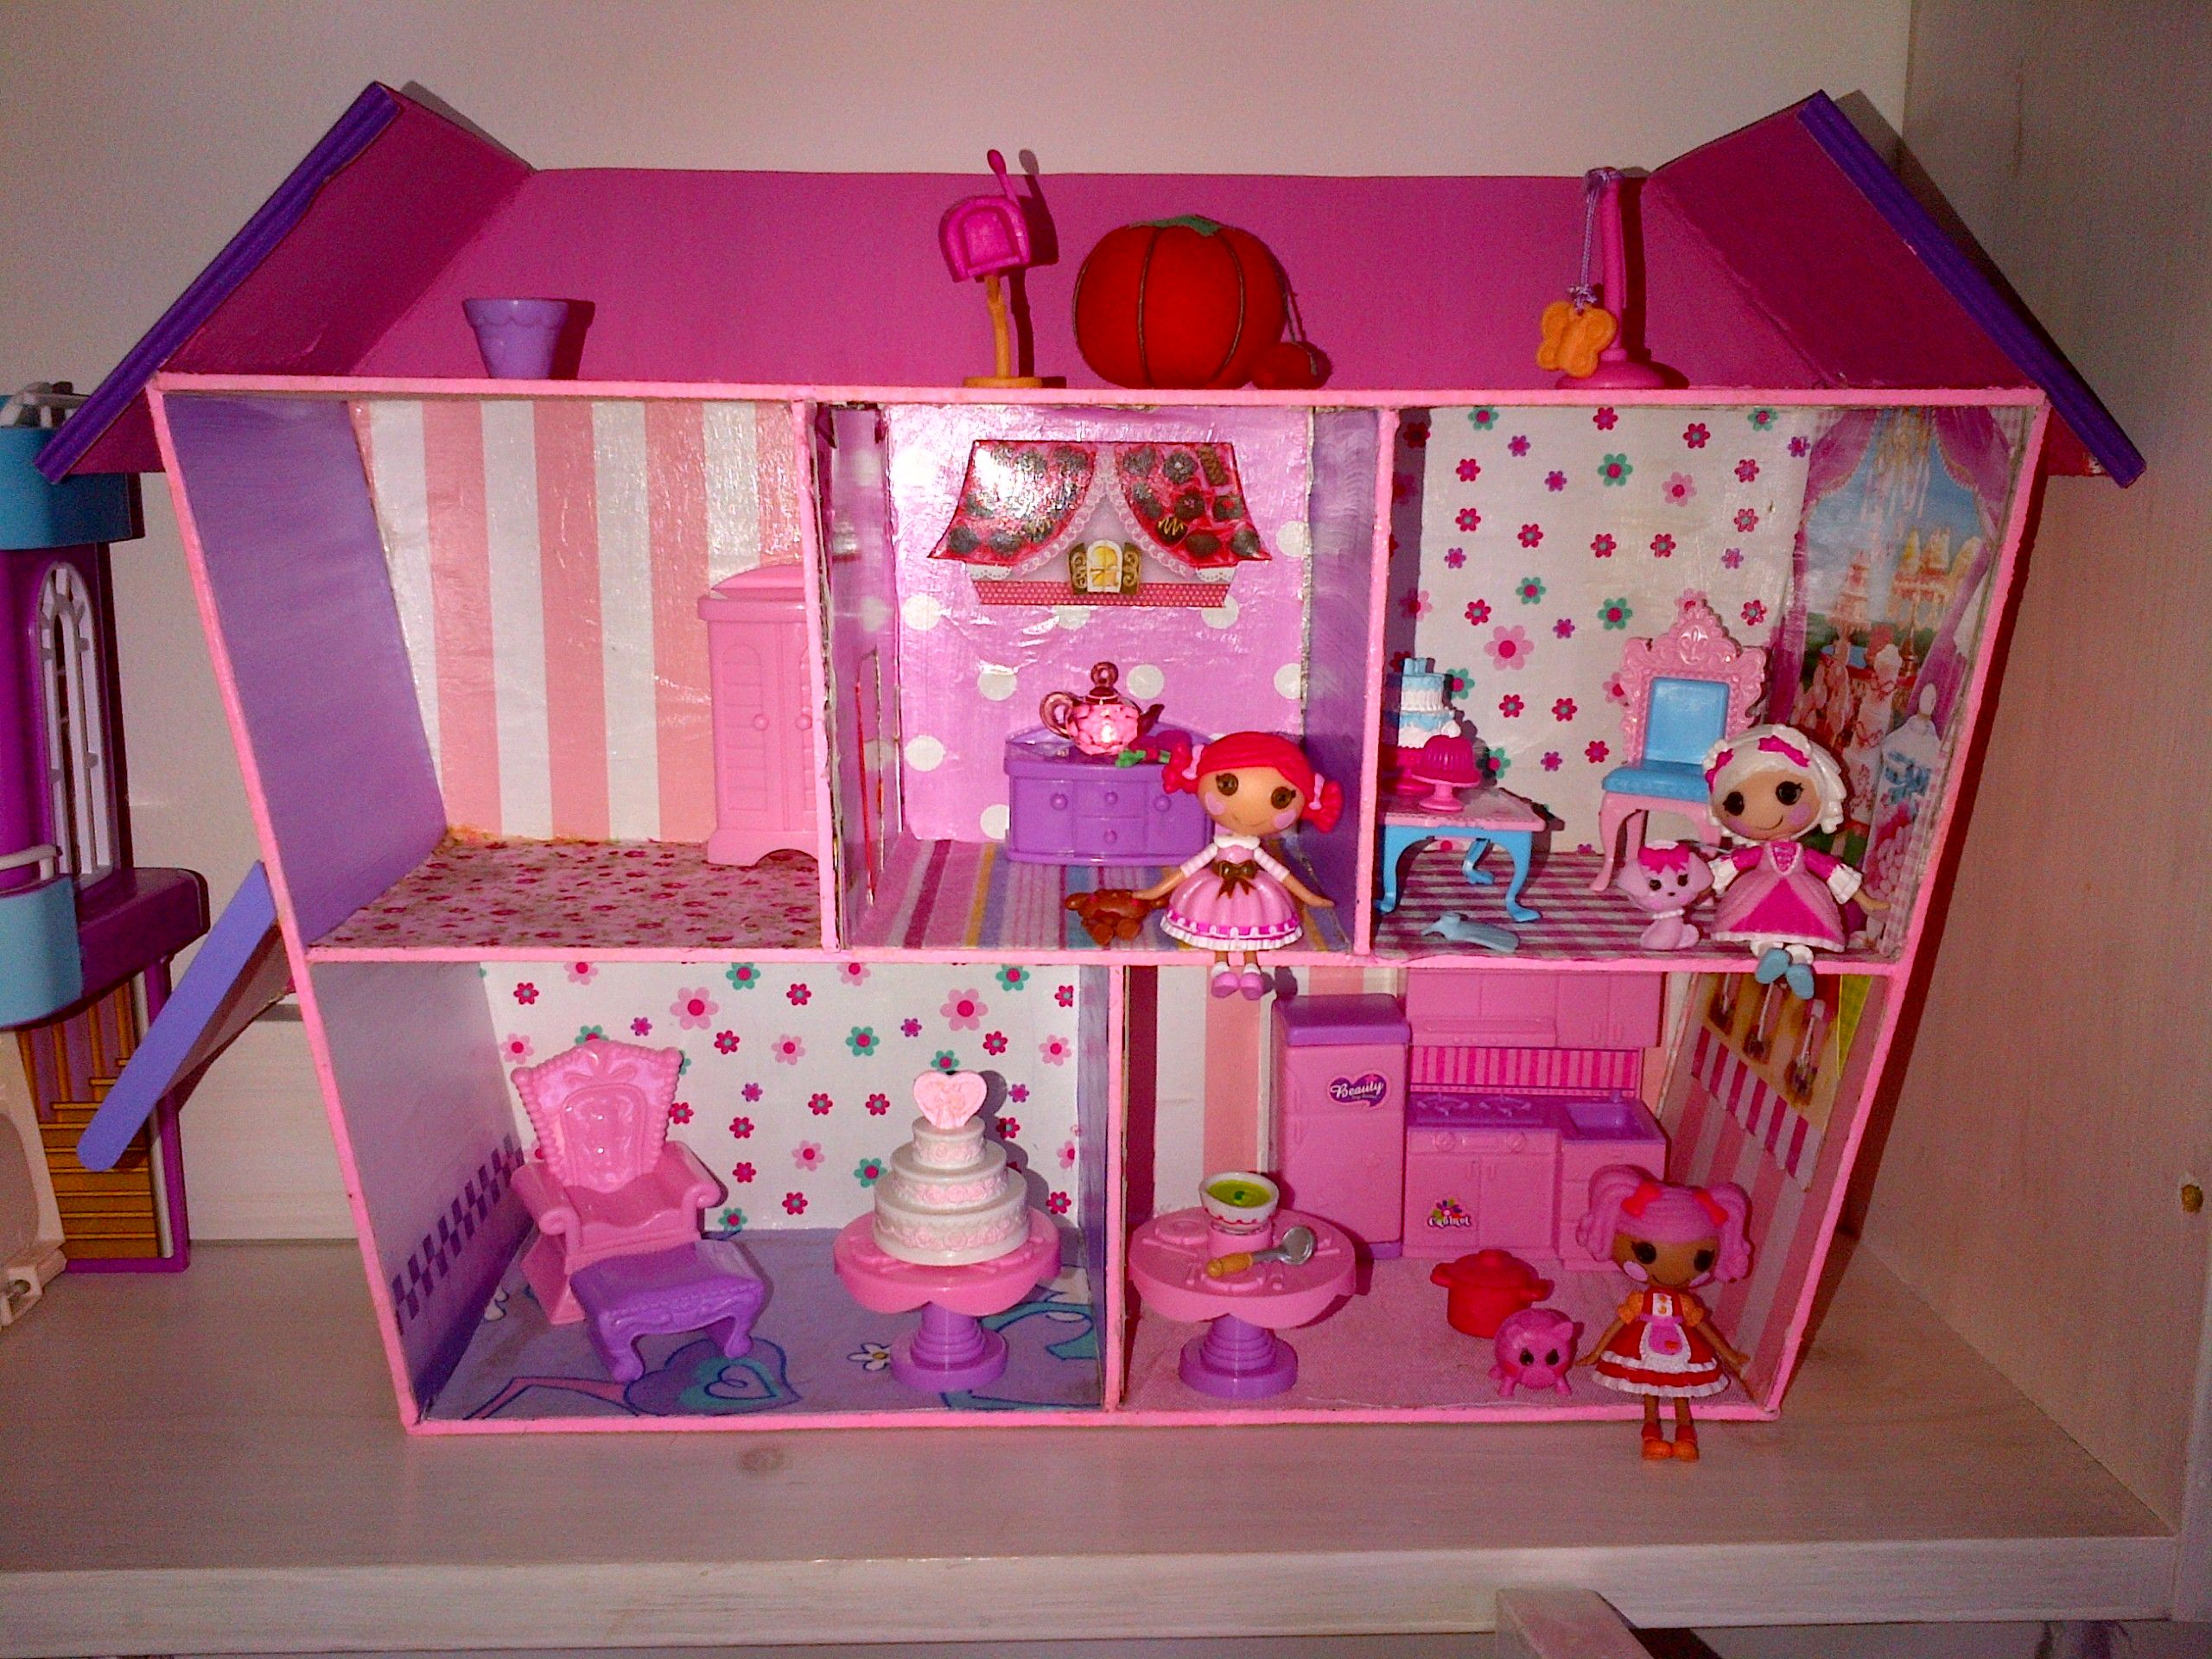 Homemade Lalaloopsy Doll House! #dollhouse #lalaloopsy